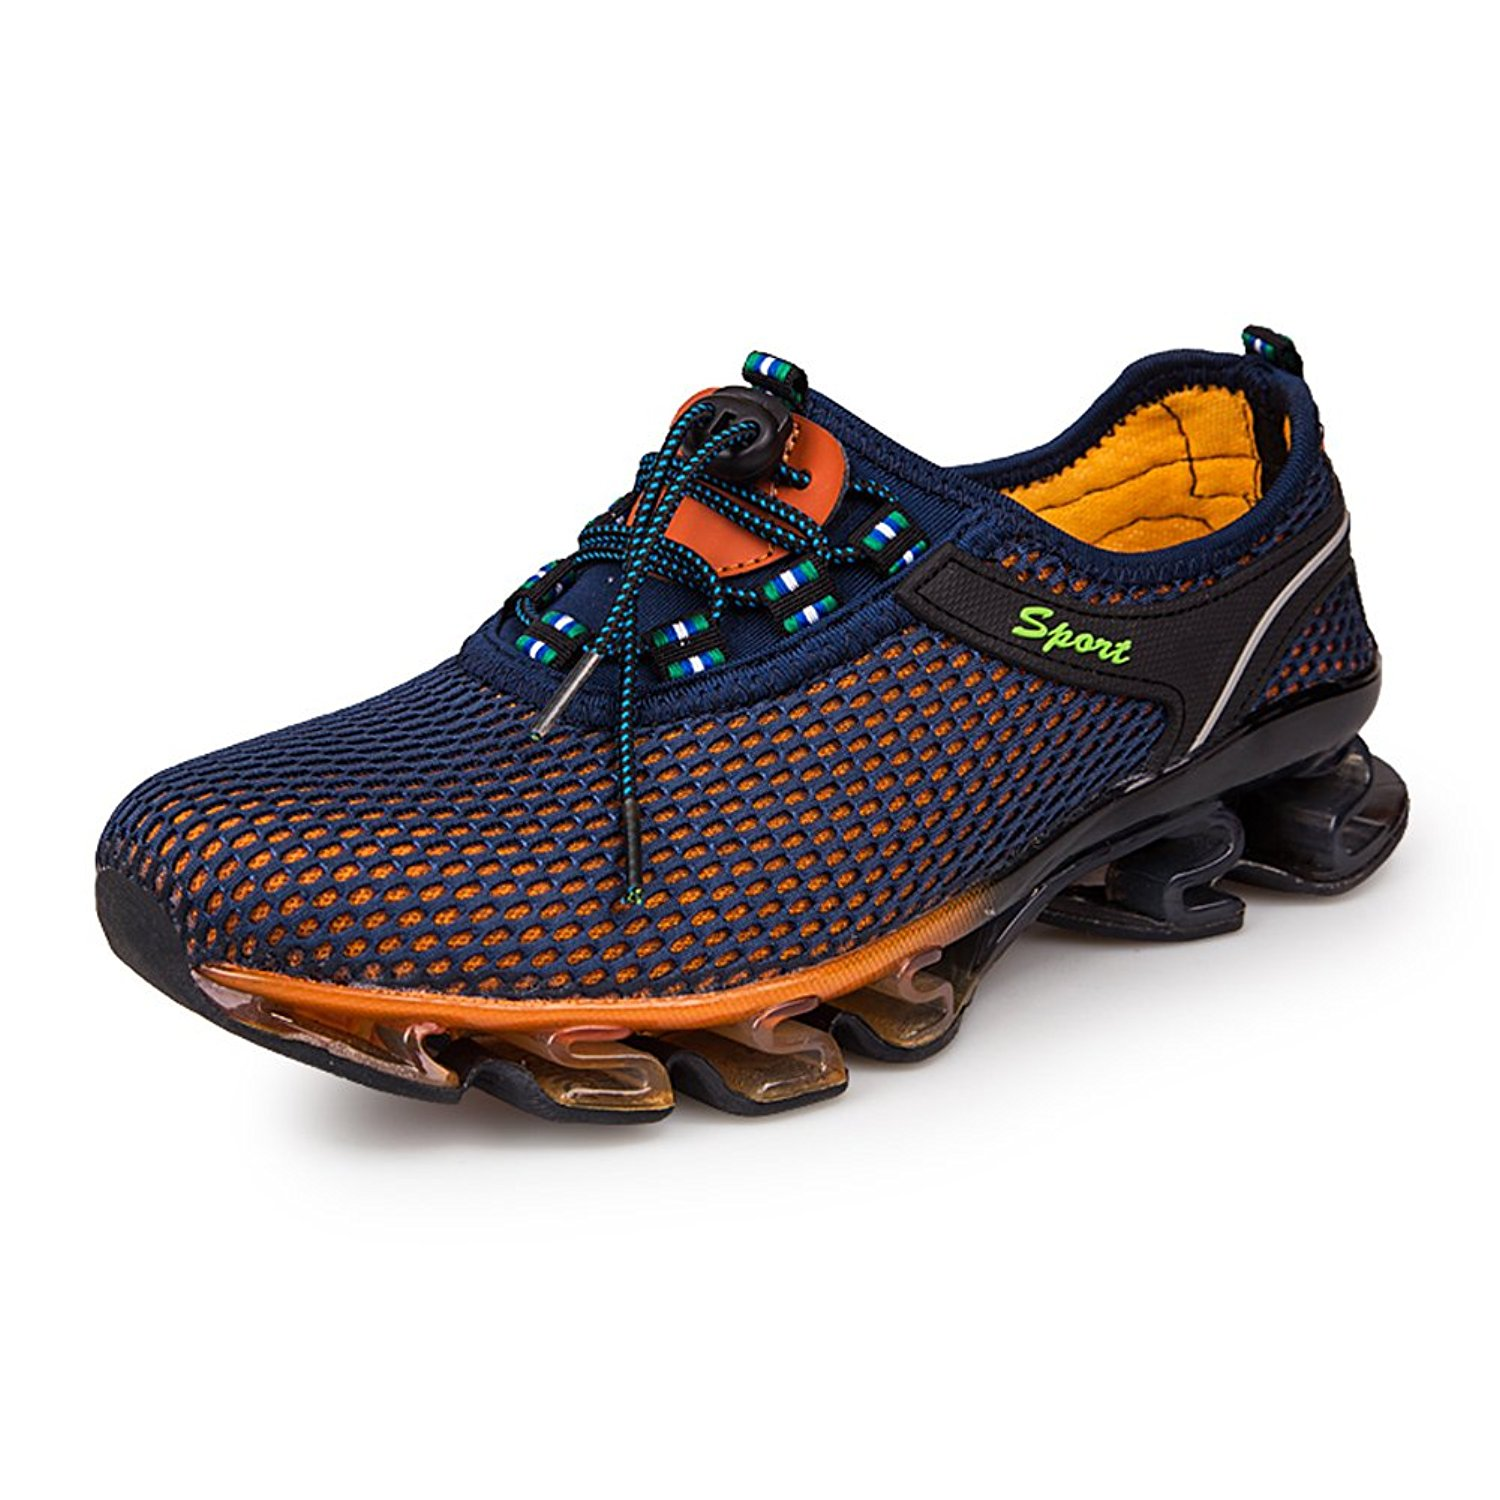 ed4861fa314c Get Quotations · Running Shoes Men Mesh Casual Slip On Breathable Fashion  Stylish Sneakers Athletic Springblade Walking Big Size